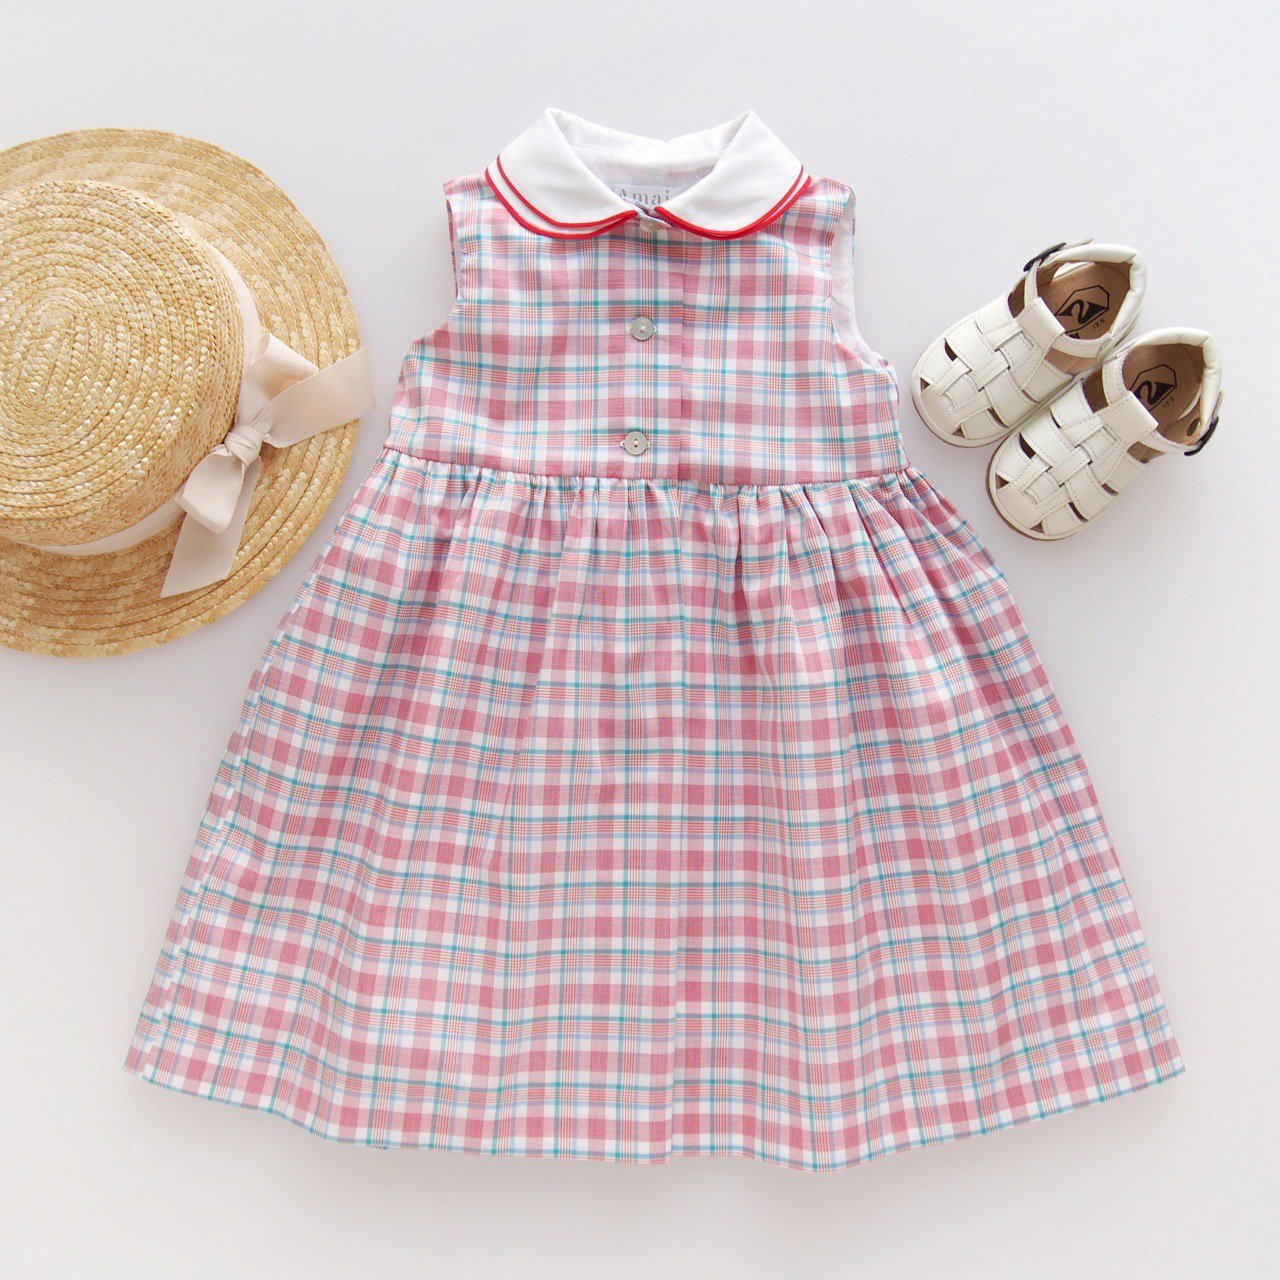 <img class='new_mark_img1' src='https://img.shop-pro.jp/img/new/icons1.gif' style='border:none;display:inline;margin:0px;padding:0px;width:auto;' />Amaia Kids - Caroline dress (Madras check)